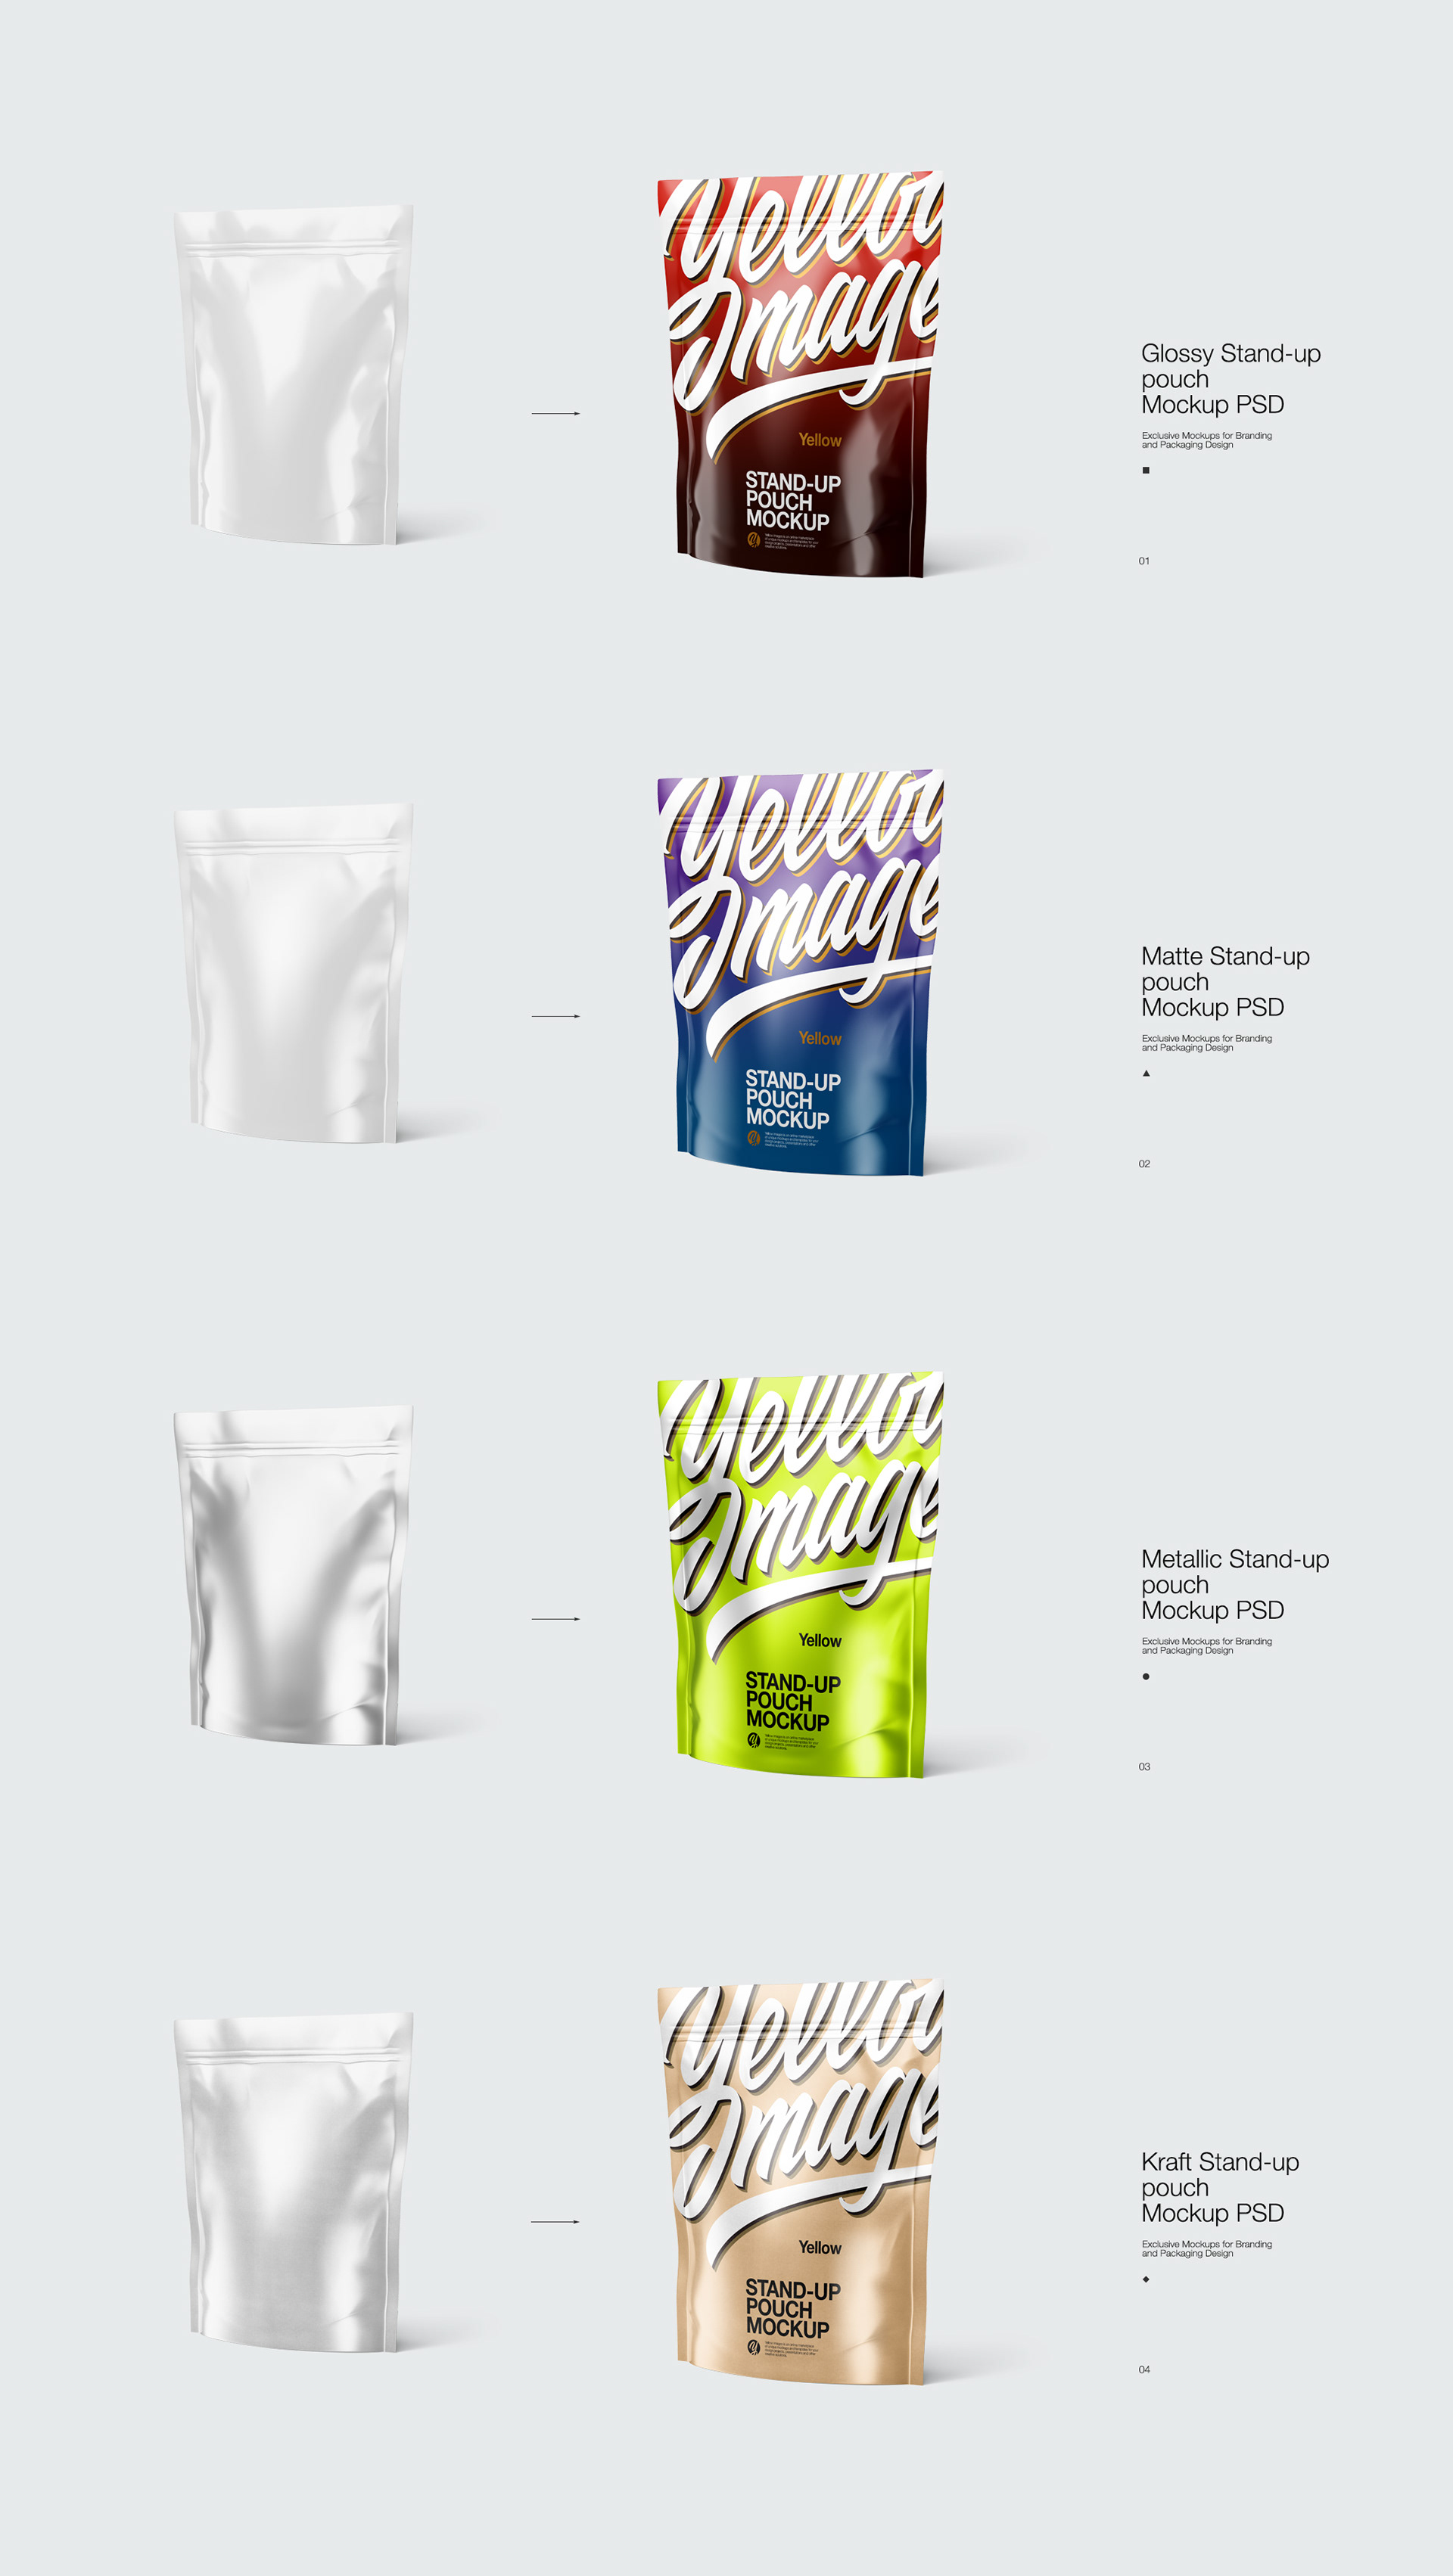 Standing Pouch Mockup : standing, pouch, mockup, Stand-up, Pouch, Mockup, Behance